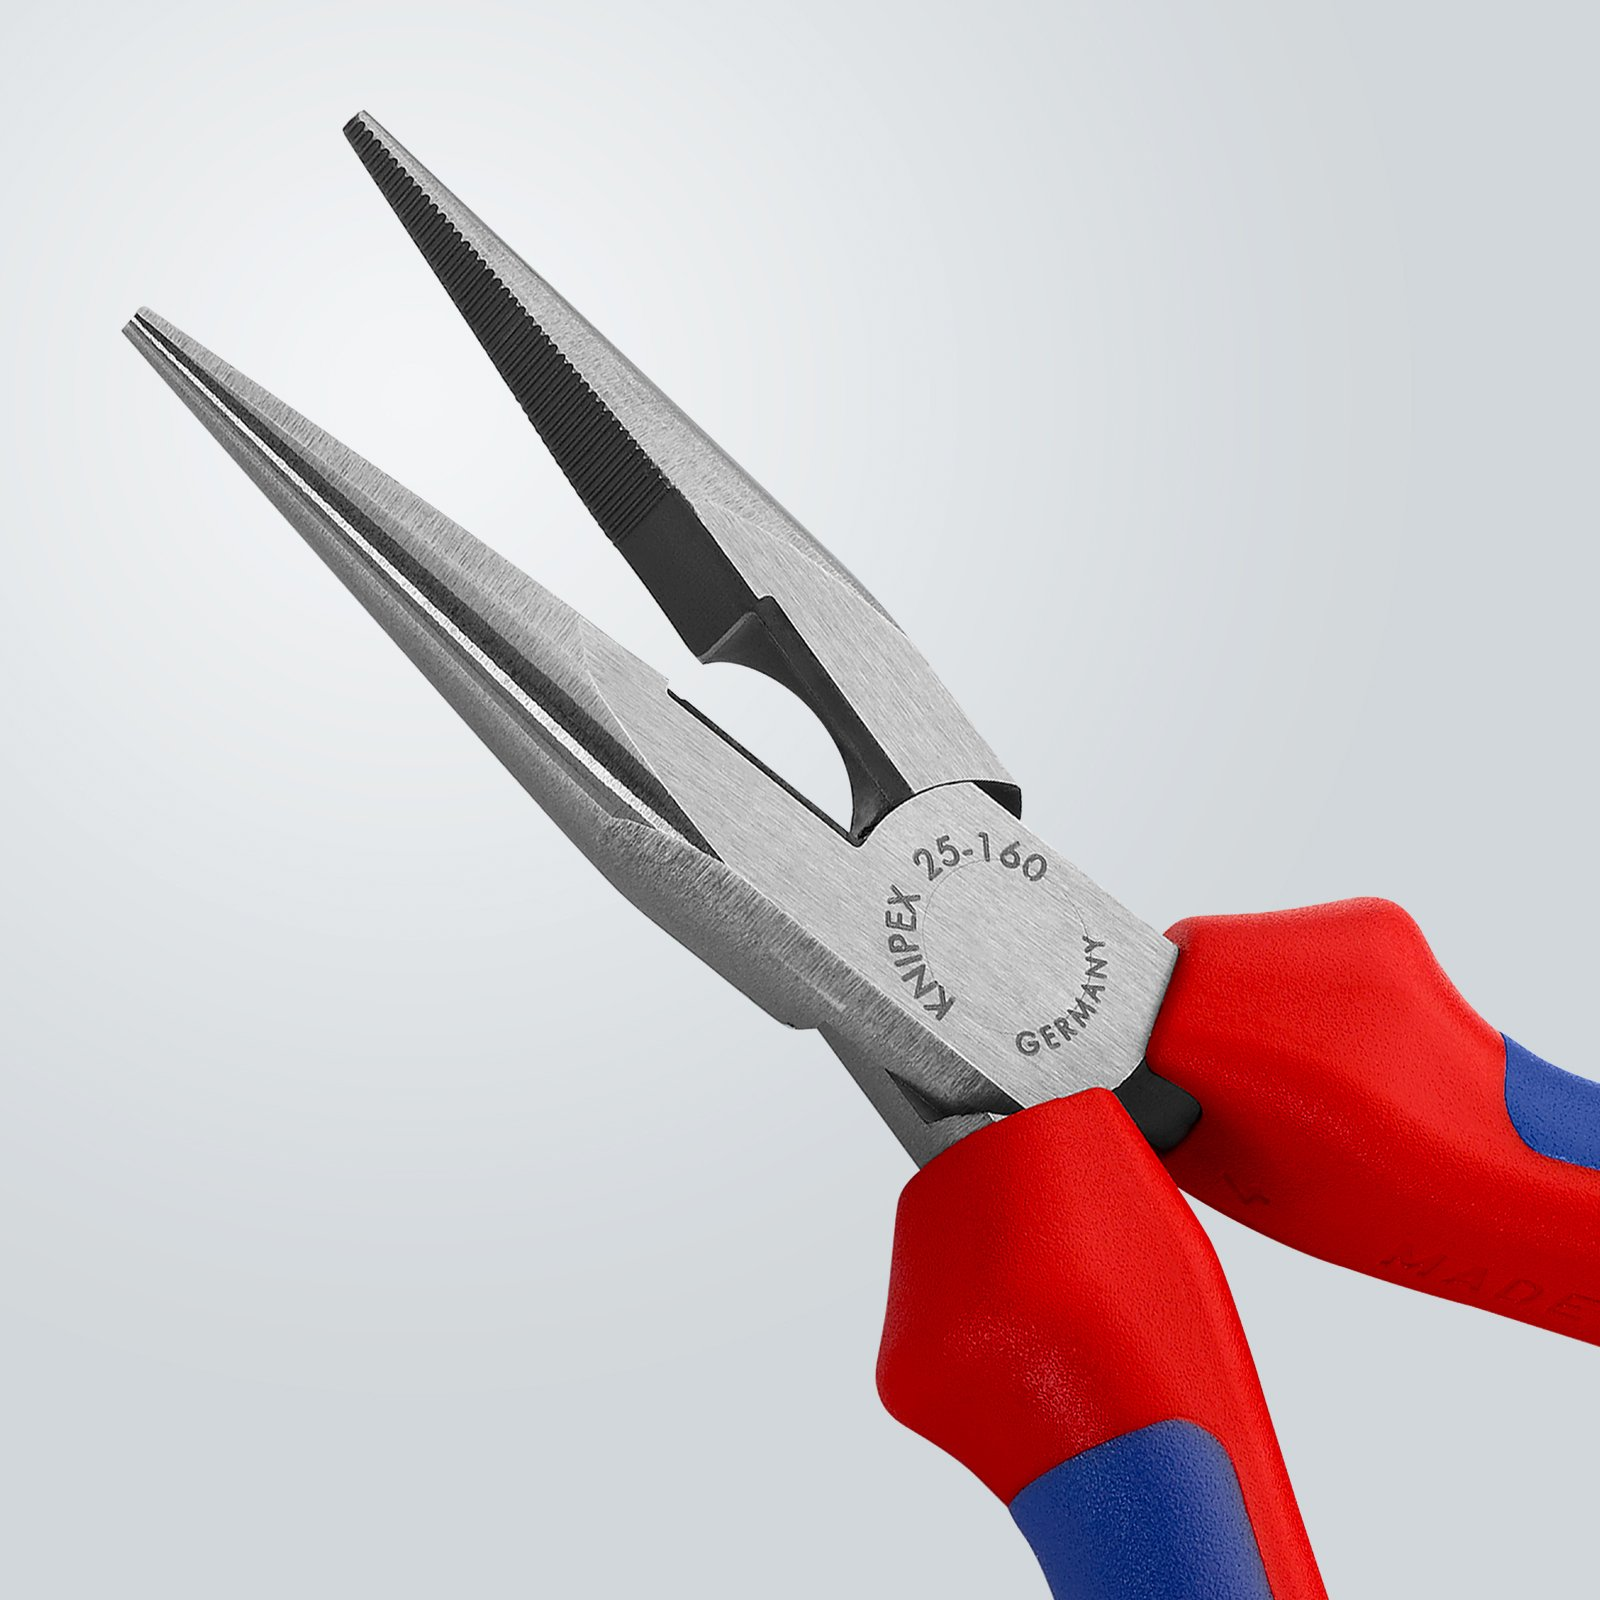 Knipex 2502160 6-1/4-Inch Chain Nose Pliers with Cutter - Comfort Grip by KNIPEX Tools (Image #3)